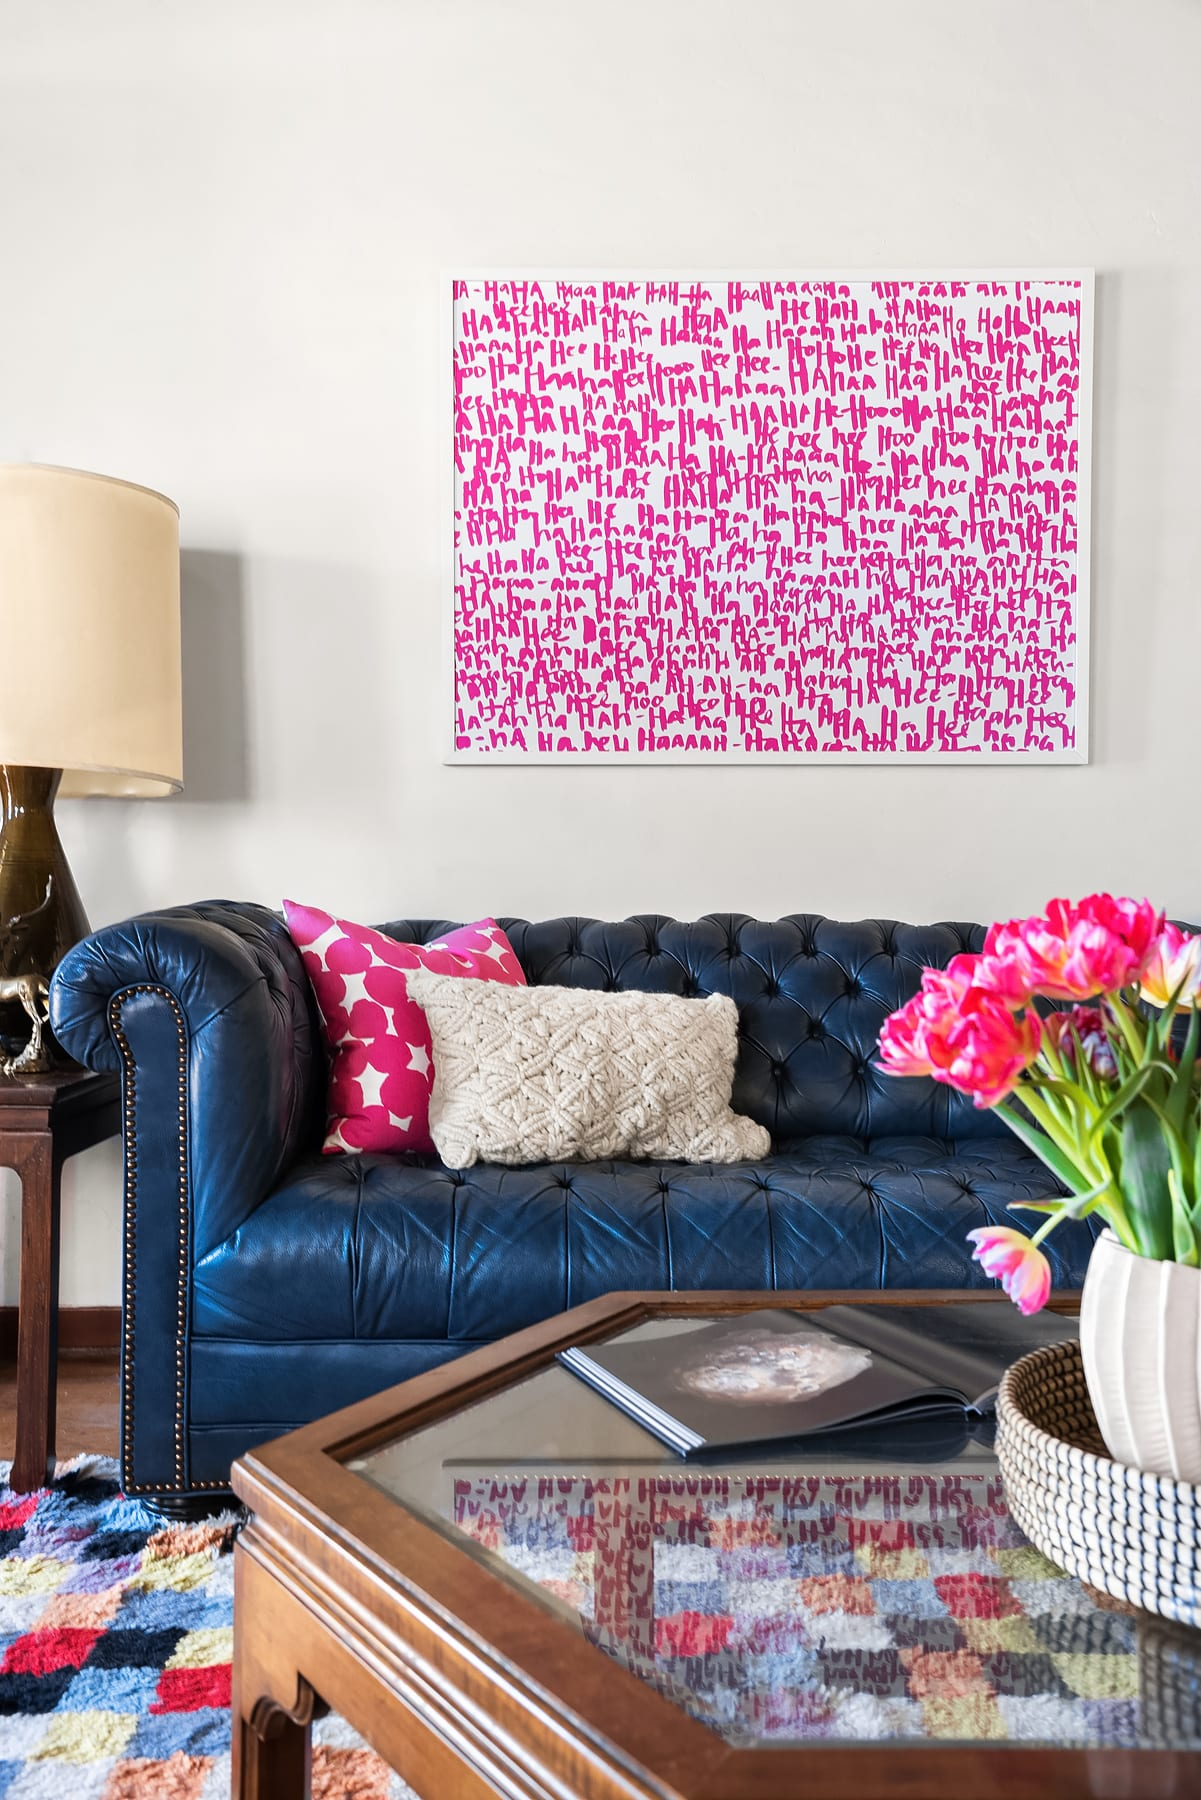 18th – Poster Couch Flowers